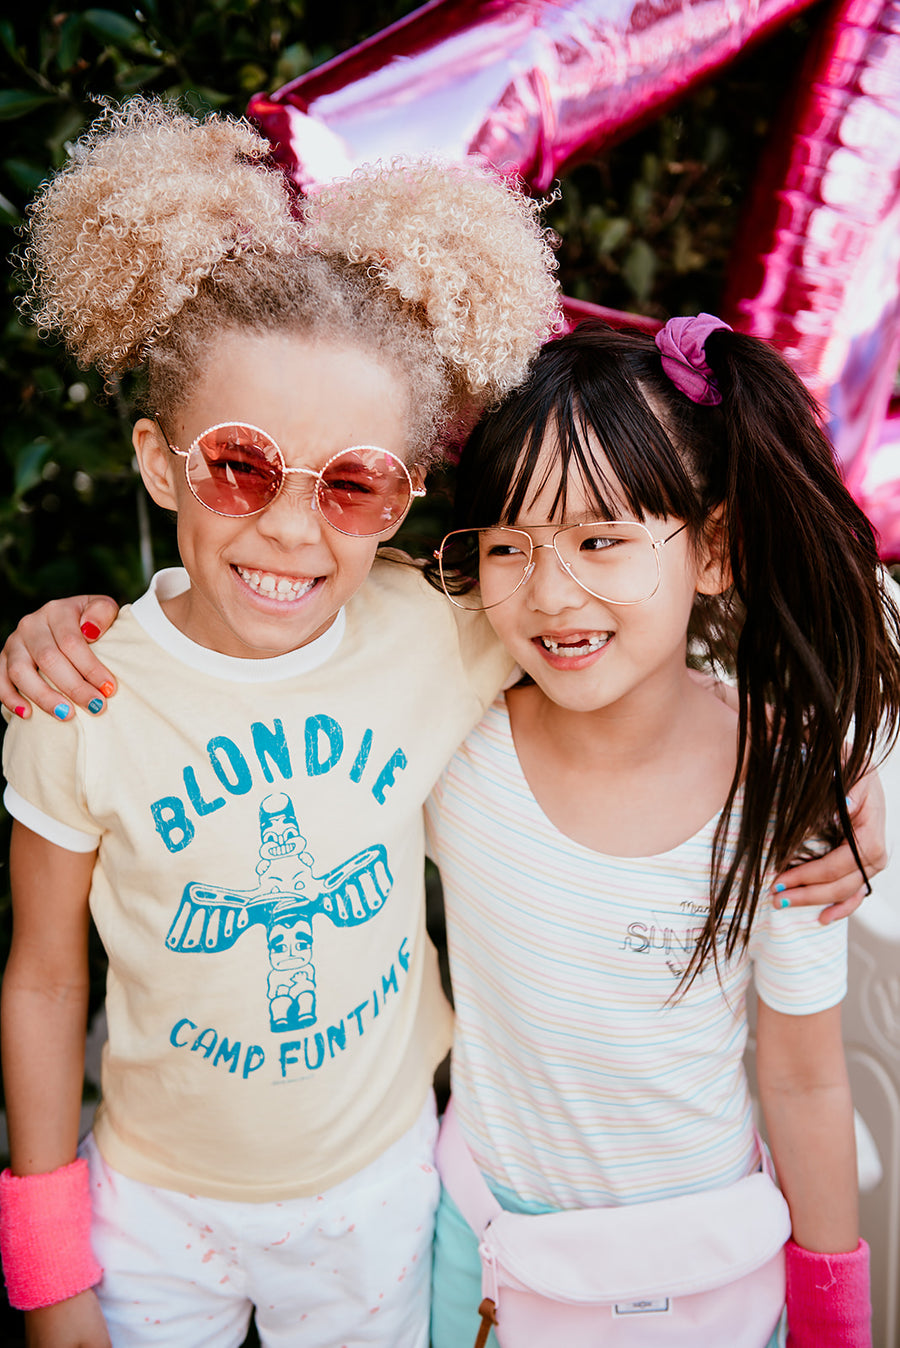 Blondie Camp Funtime Girls Vintage Wash Ringer Tee